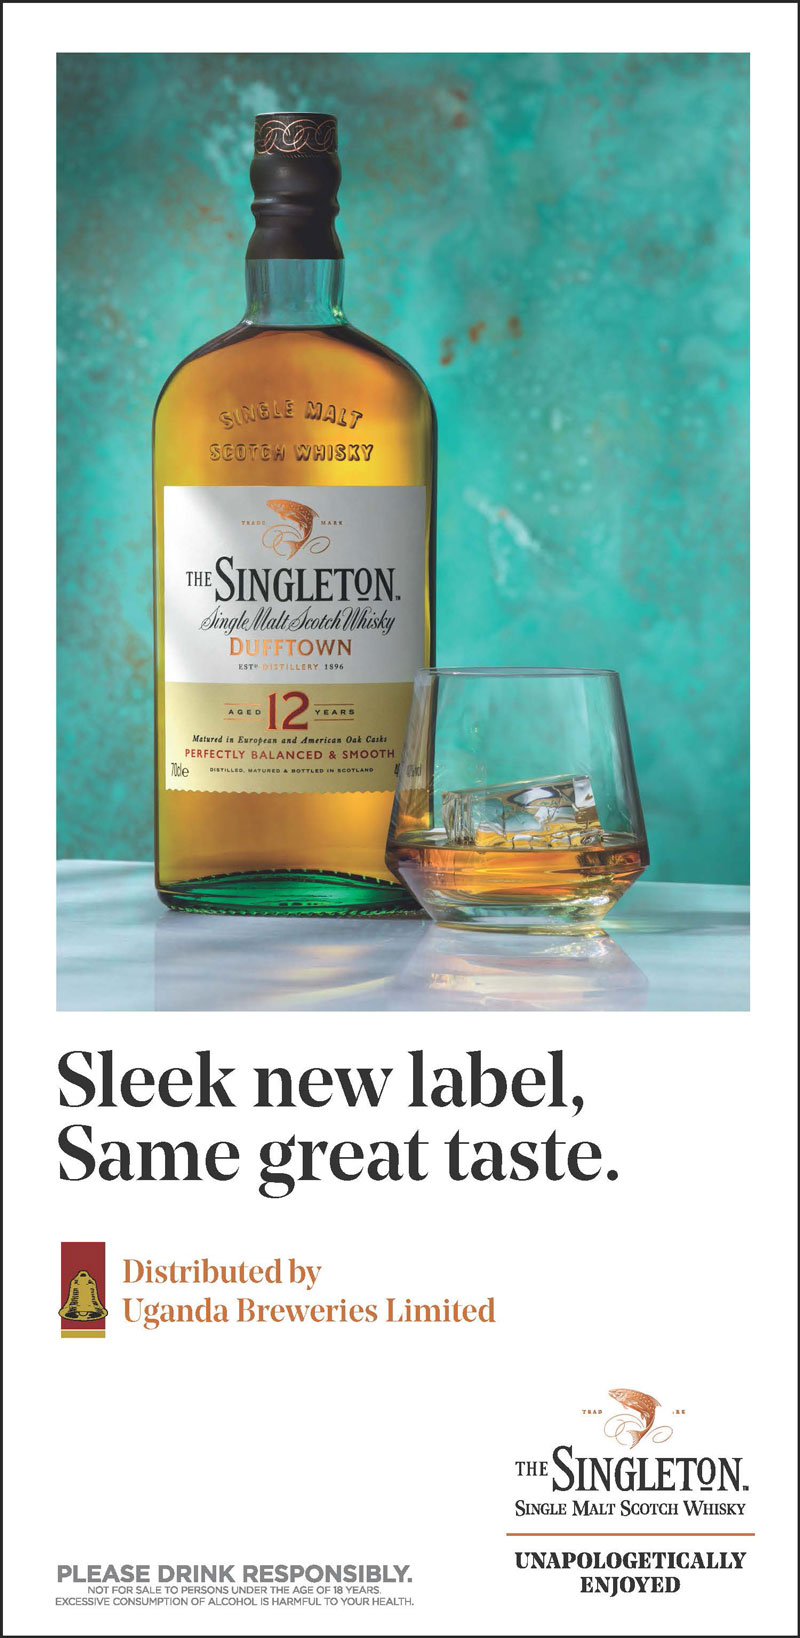 Meet the new Singleton Bottle